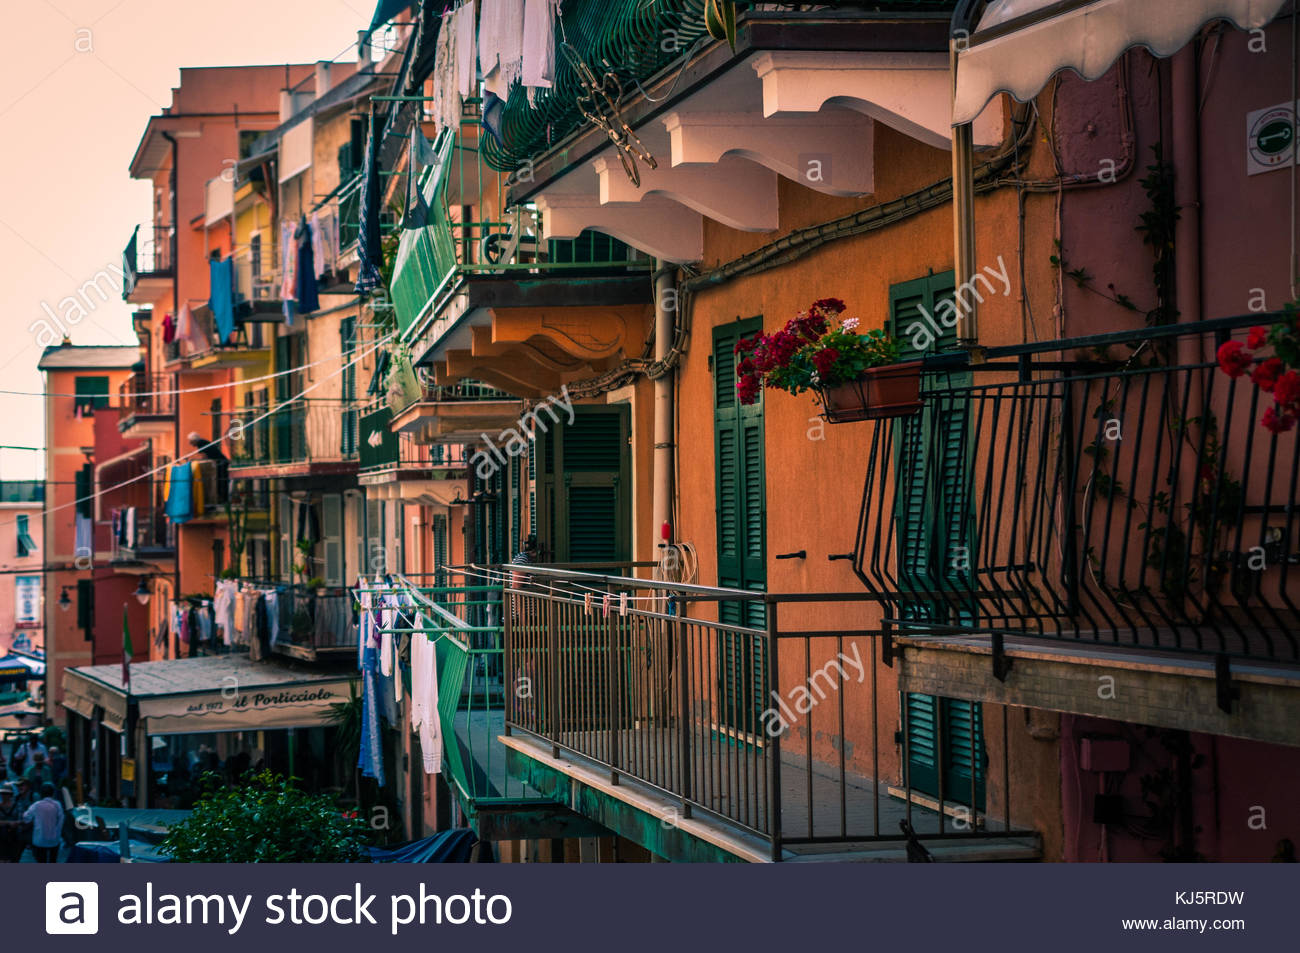 Colourful houses with balconies - Stock Image